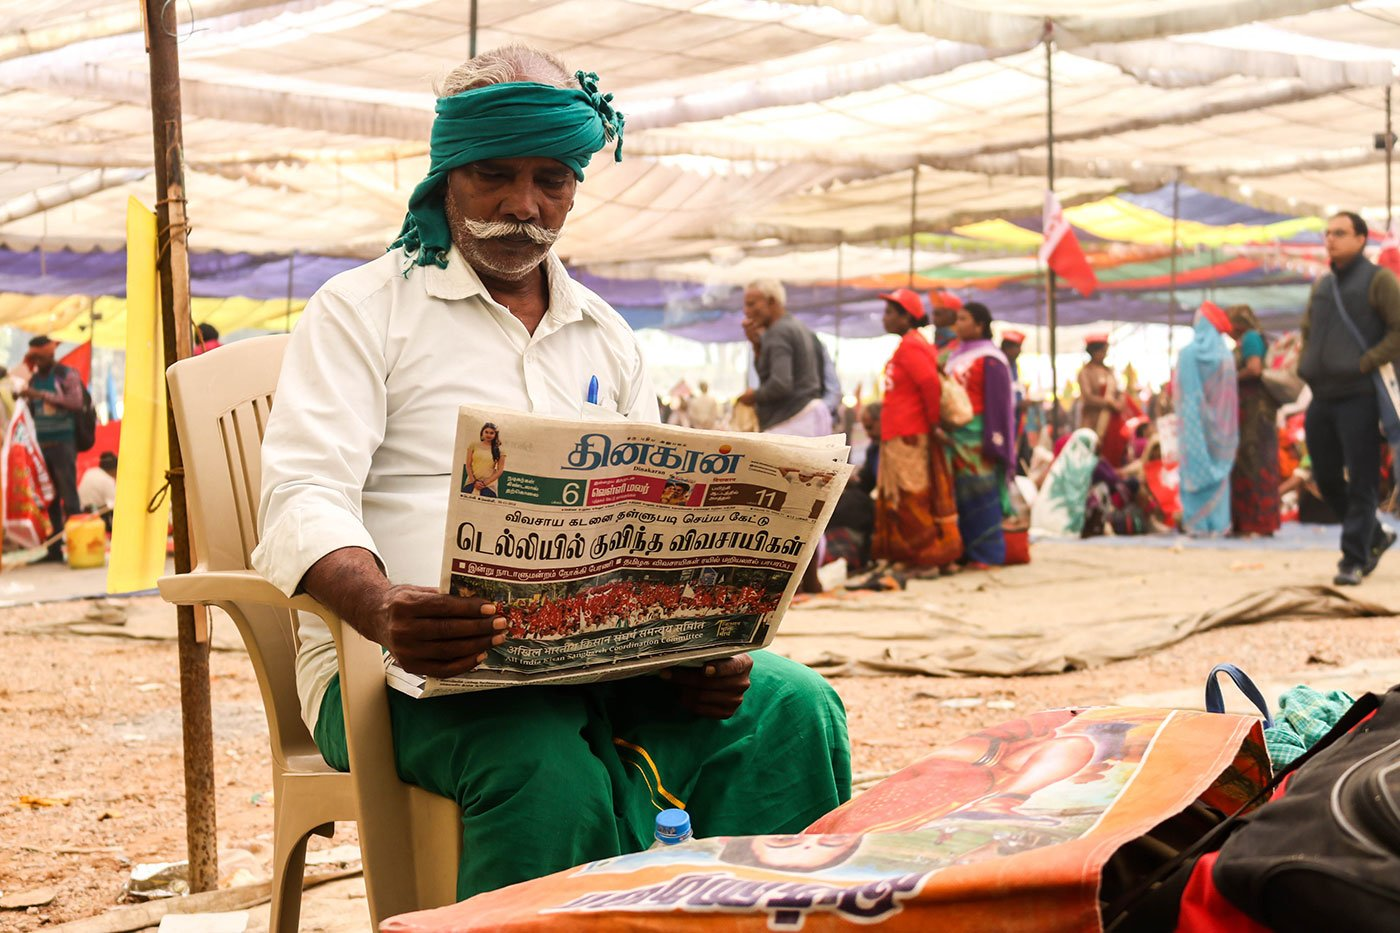 Kodanda Raman, 62, a farmer from Kanjankollai village in Kattumannarkoil taluka of Cuddalore district in Tamil Nadu reading the Tamil Newspaper to see if they had covered their story on the March towards Ramlila Maidan